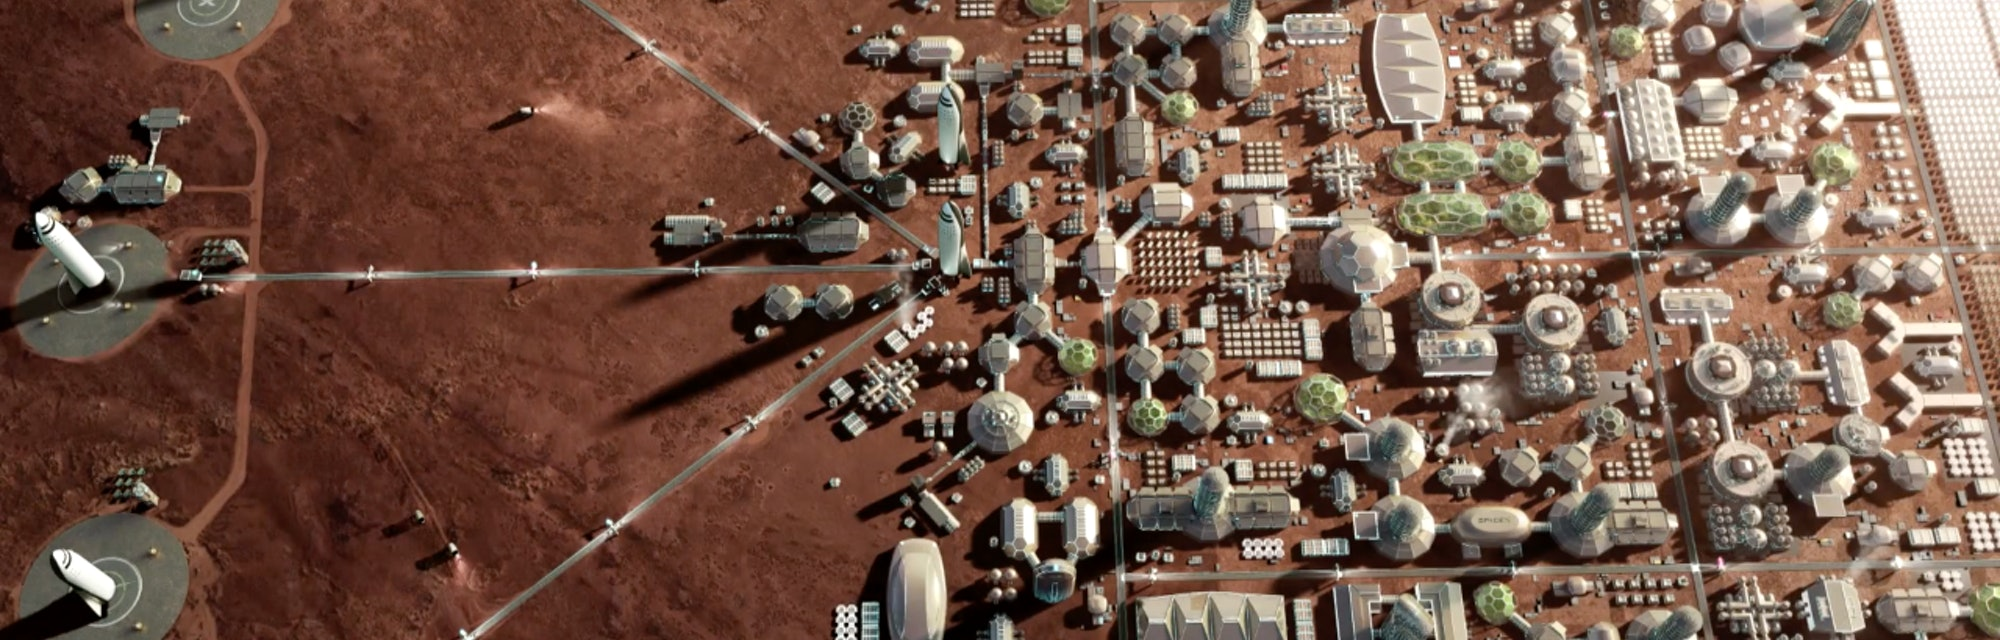 Space City 'Self-Sustainable Habitat' On Mars